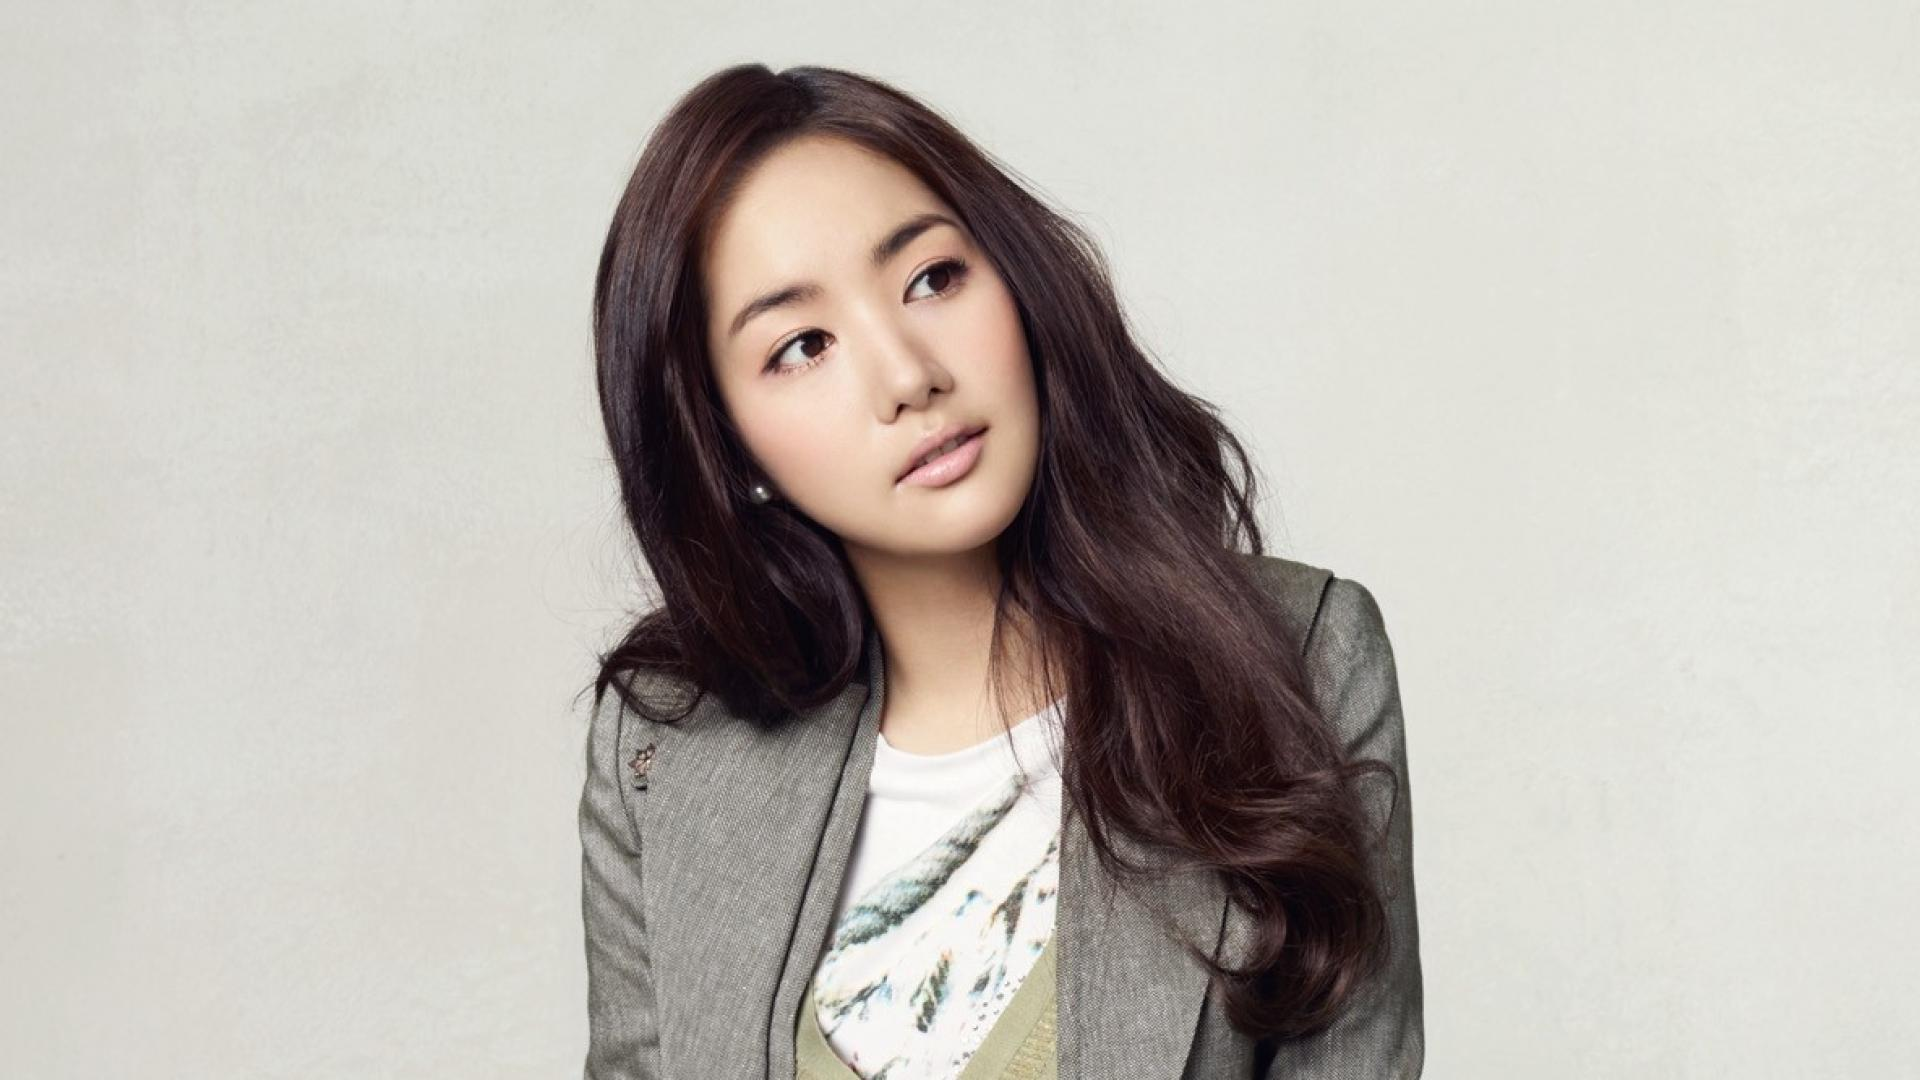 Pictures Of Park Min Young